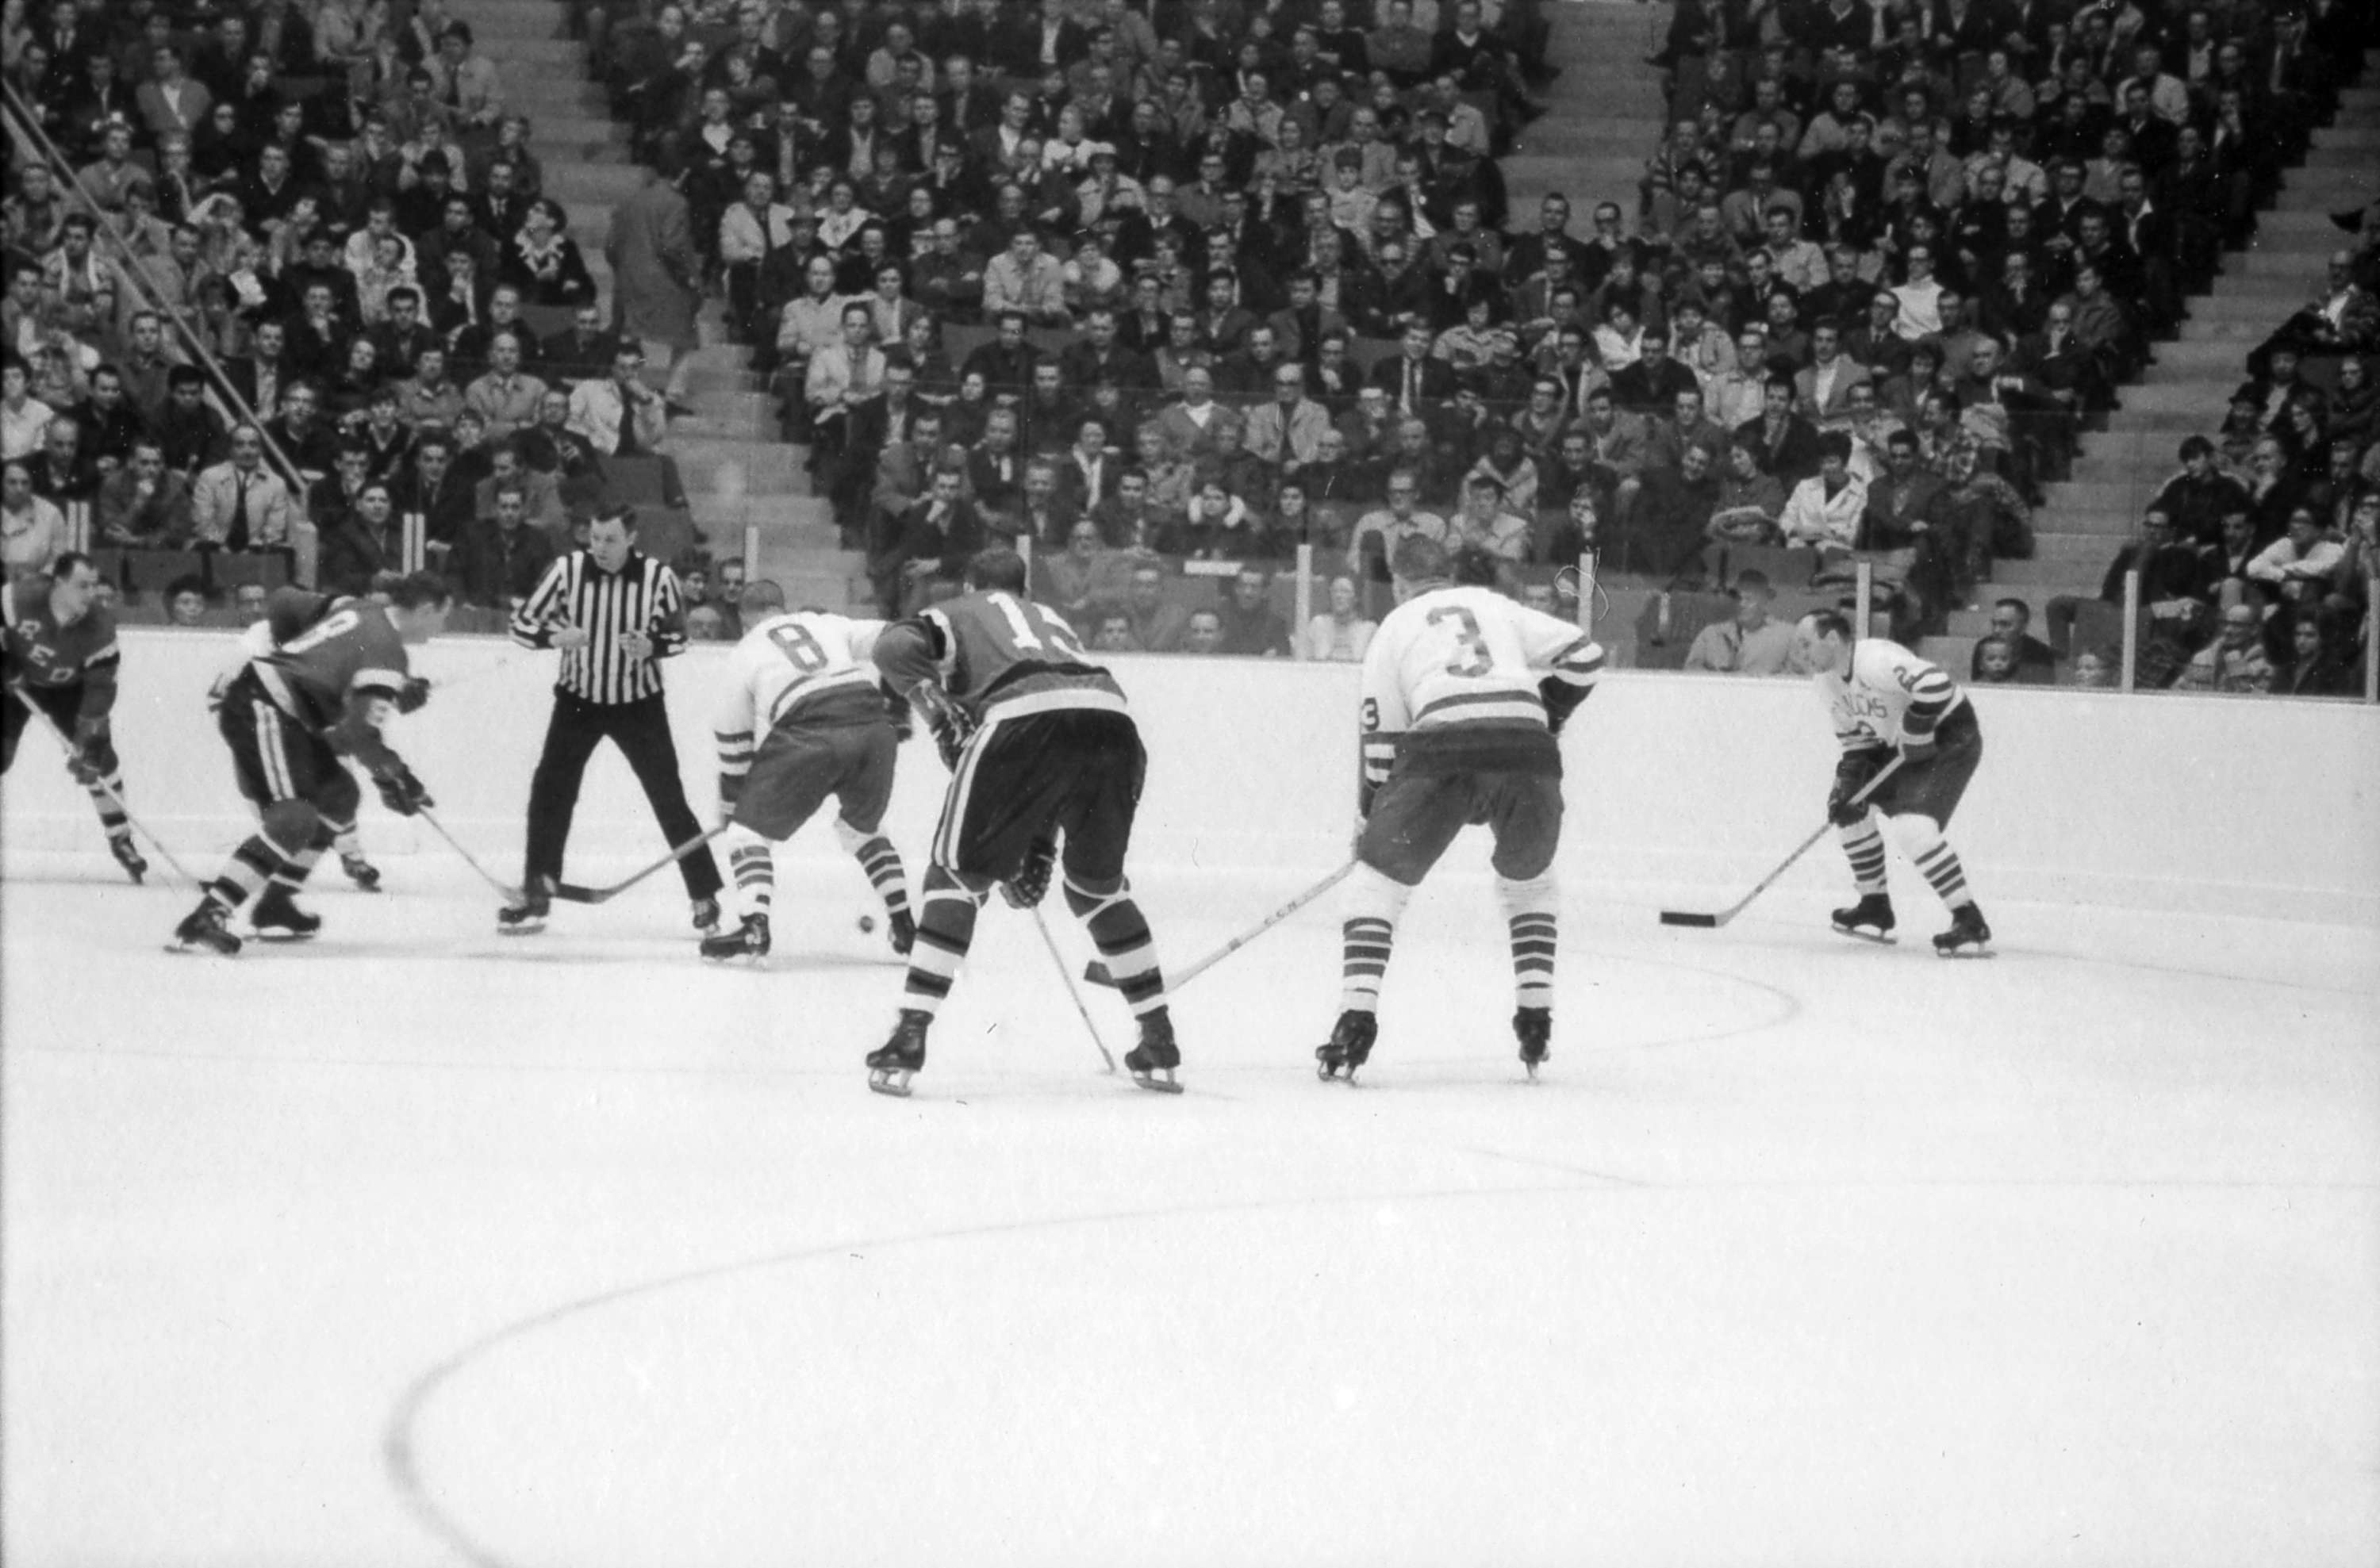 Vancouver Canucks Whl Hockey Game In Pacific Coliseum City Of